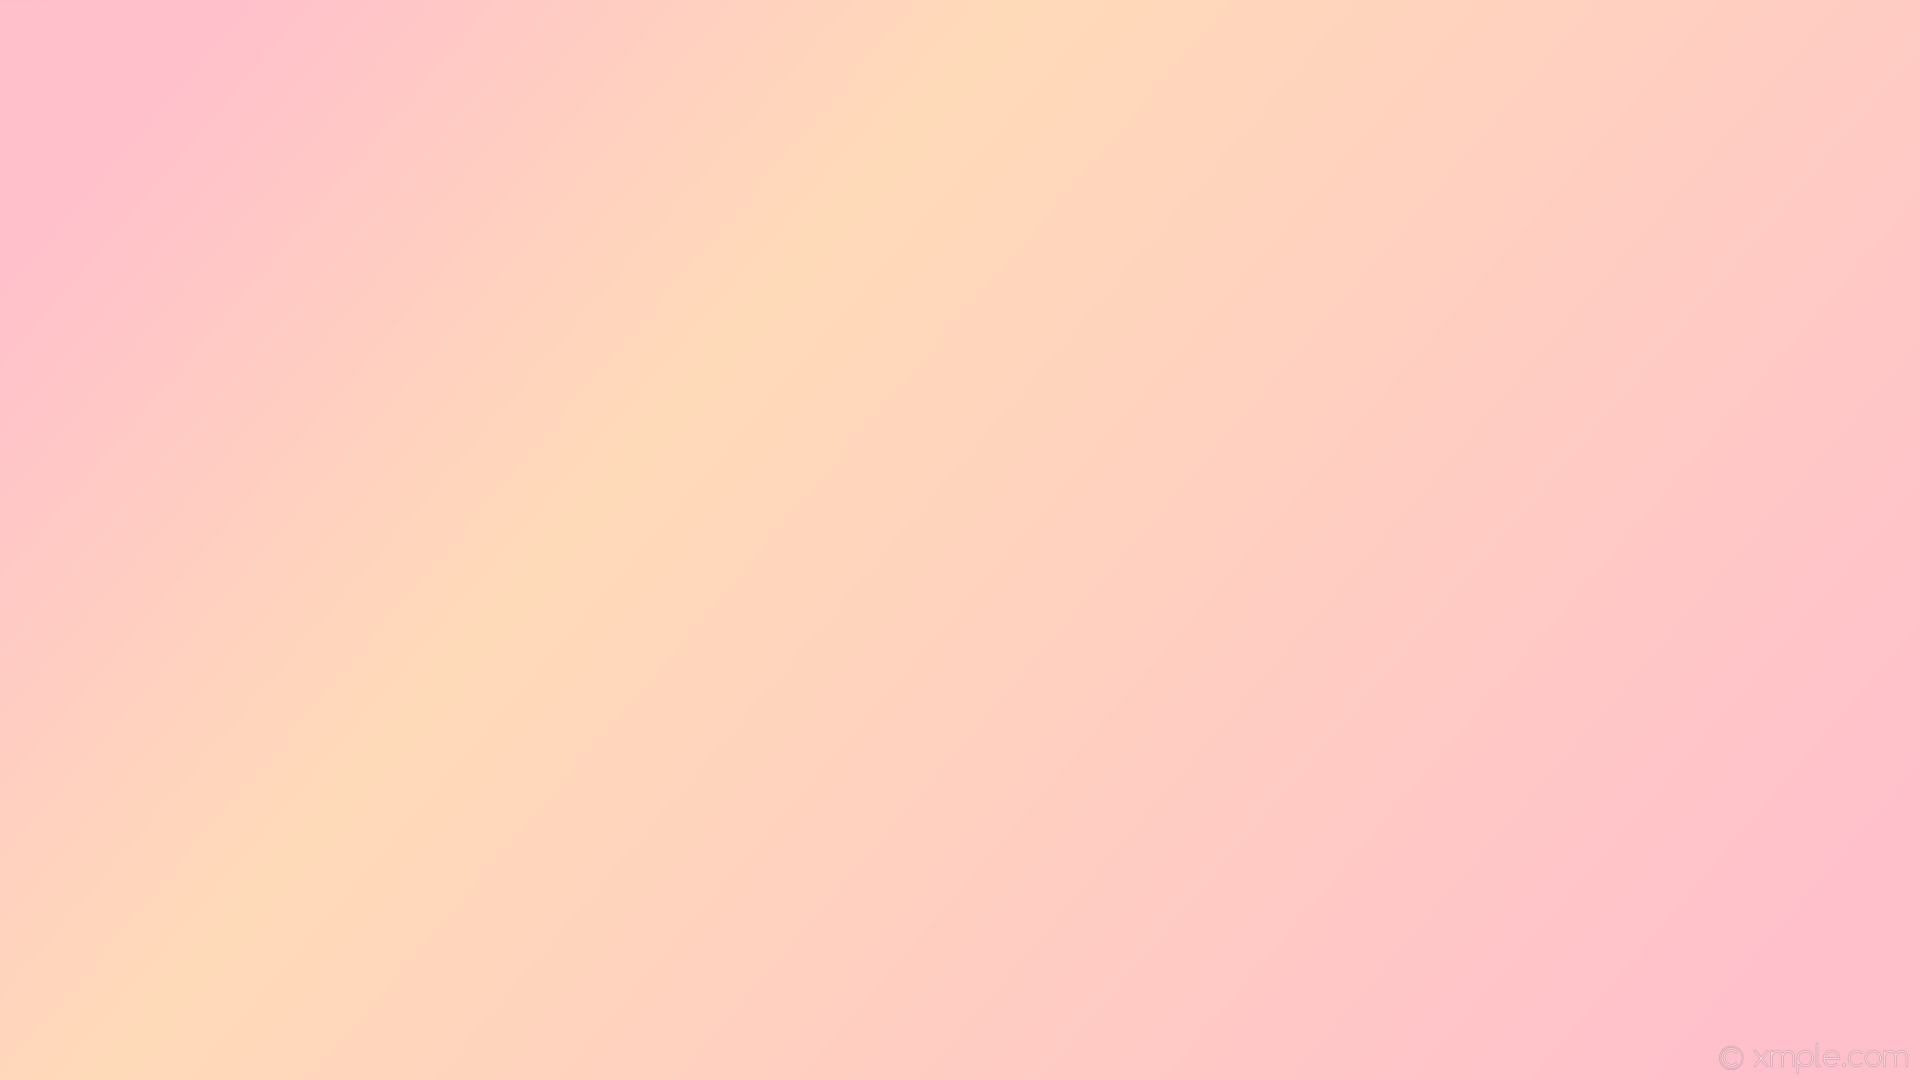 1920x1080 wallpaper linear highlight gradient yellow pink peach puff #ffc0cb #ffdab9  345° 67%